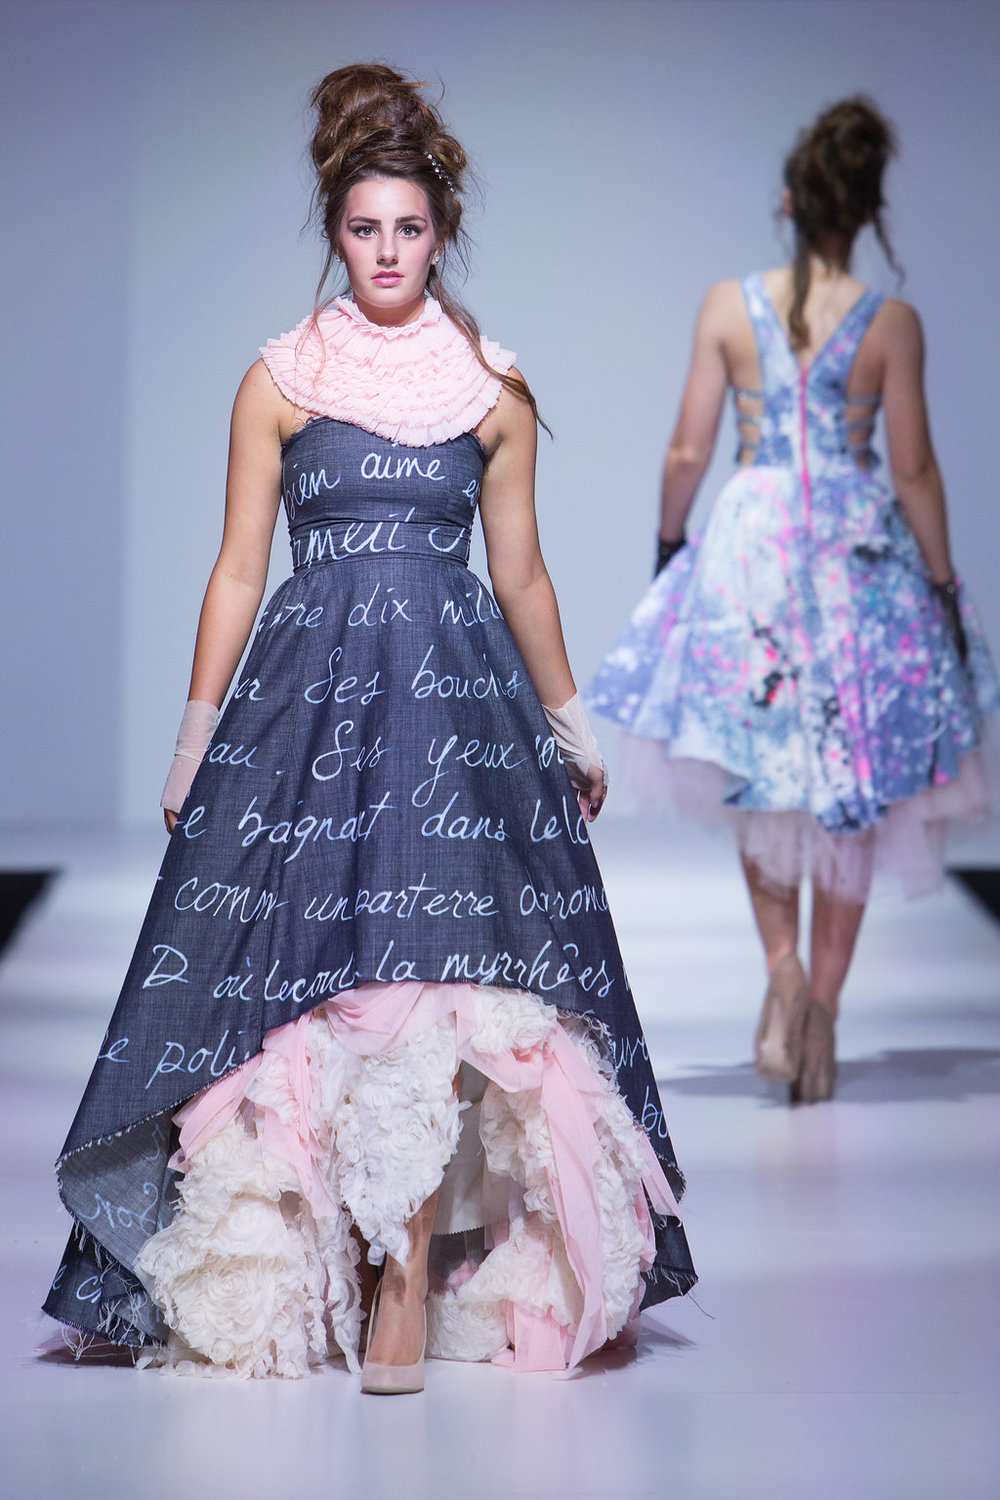 love letter dress... Song of Solomon passage translated into French.